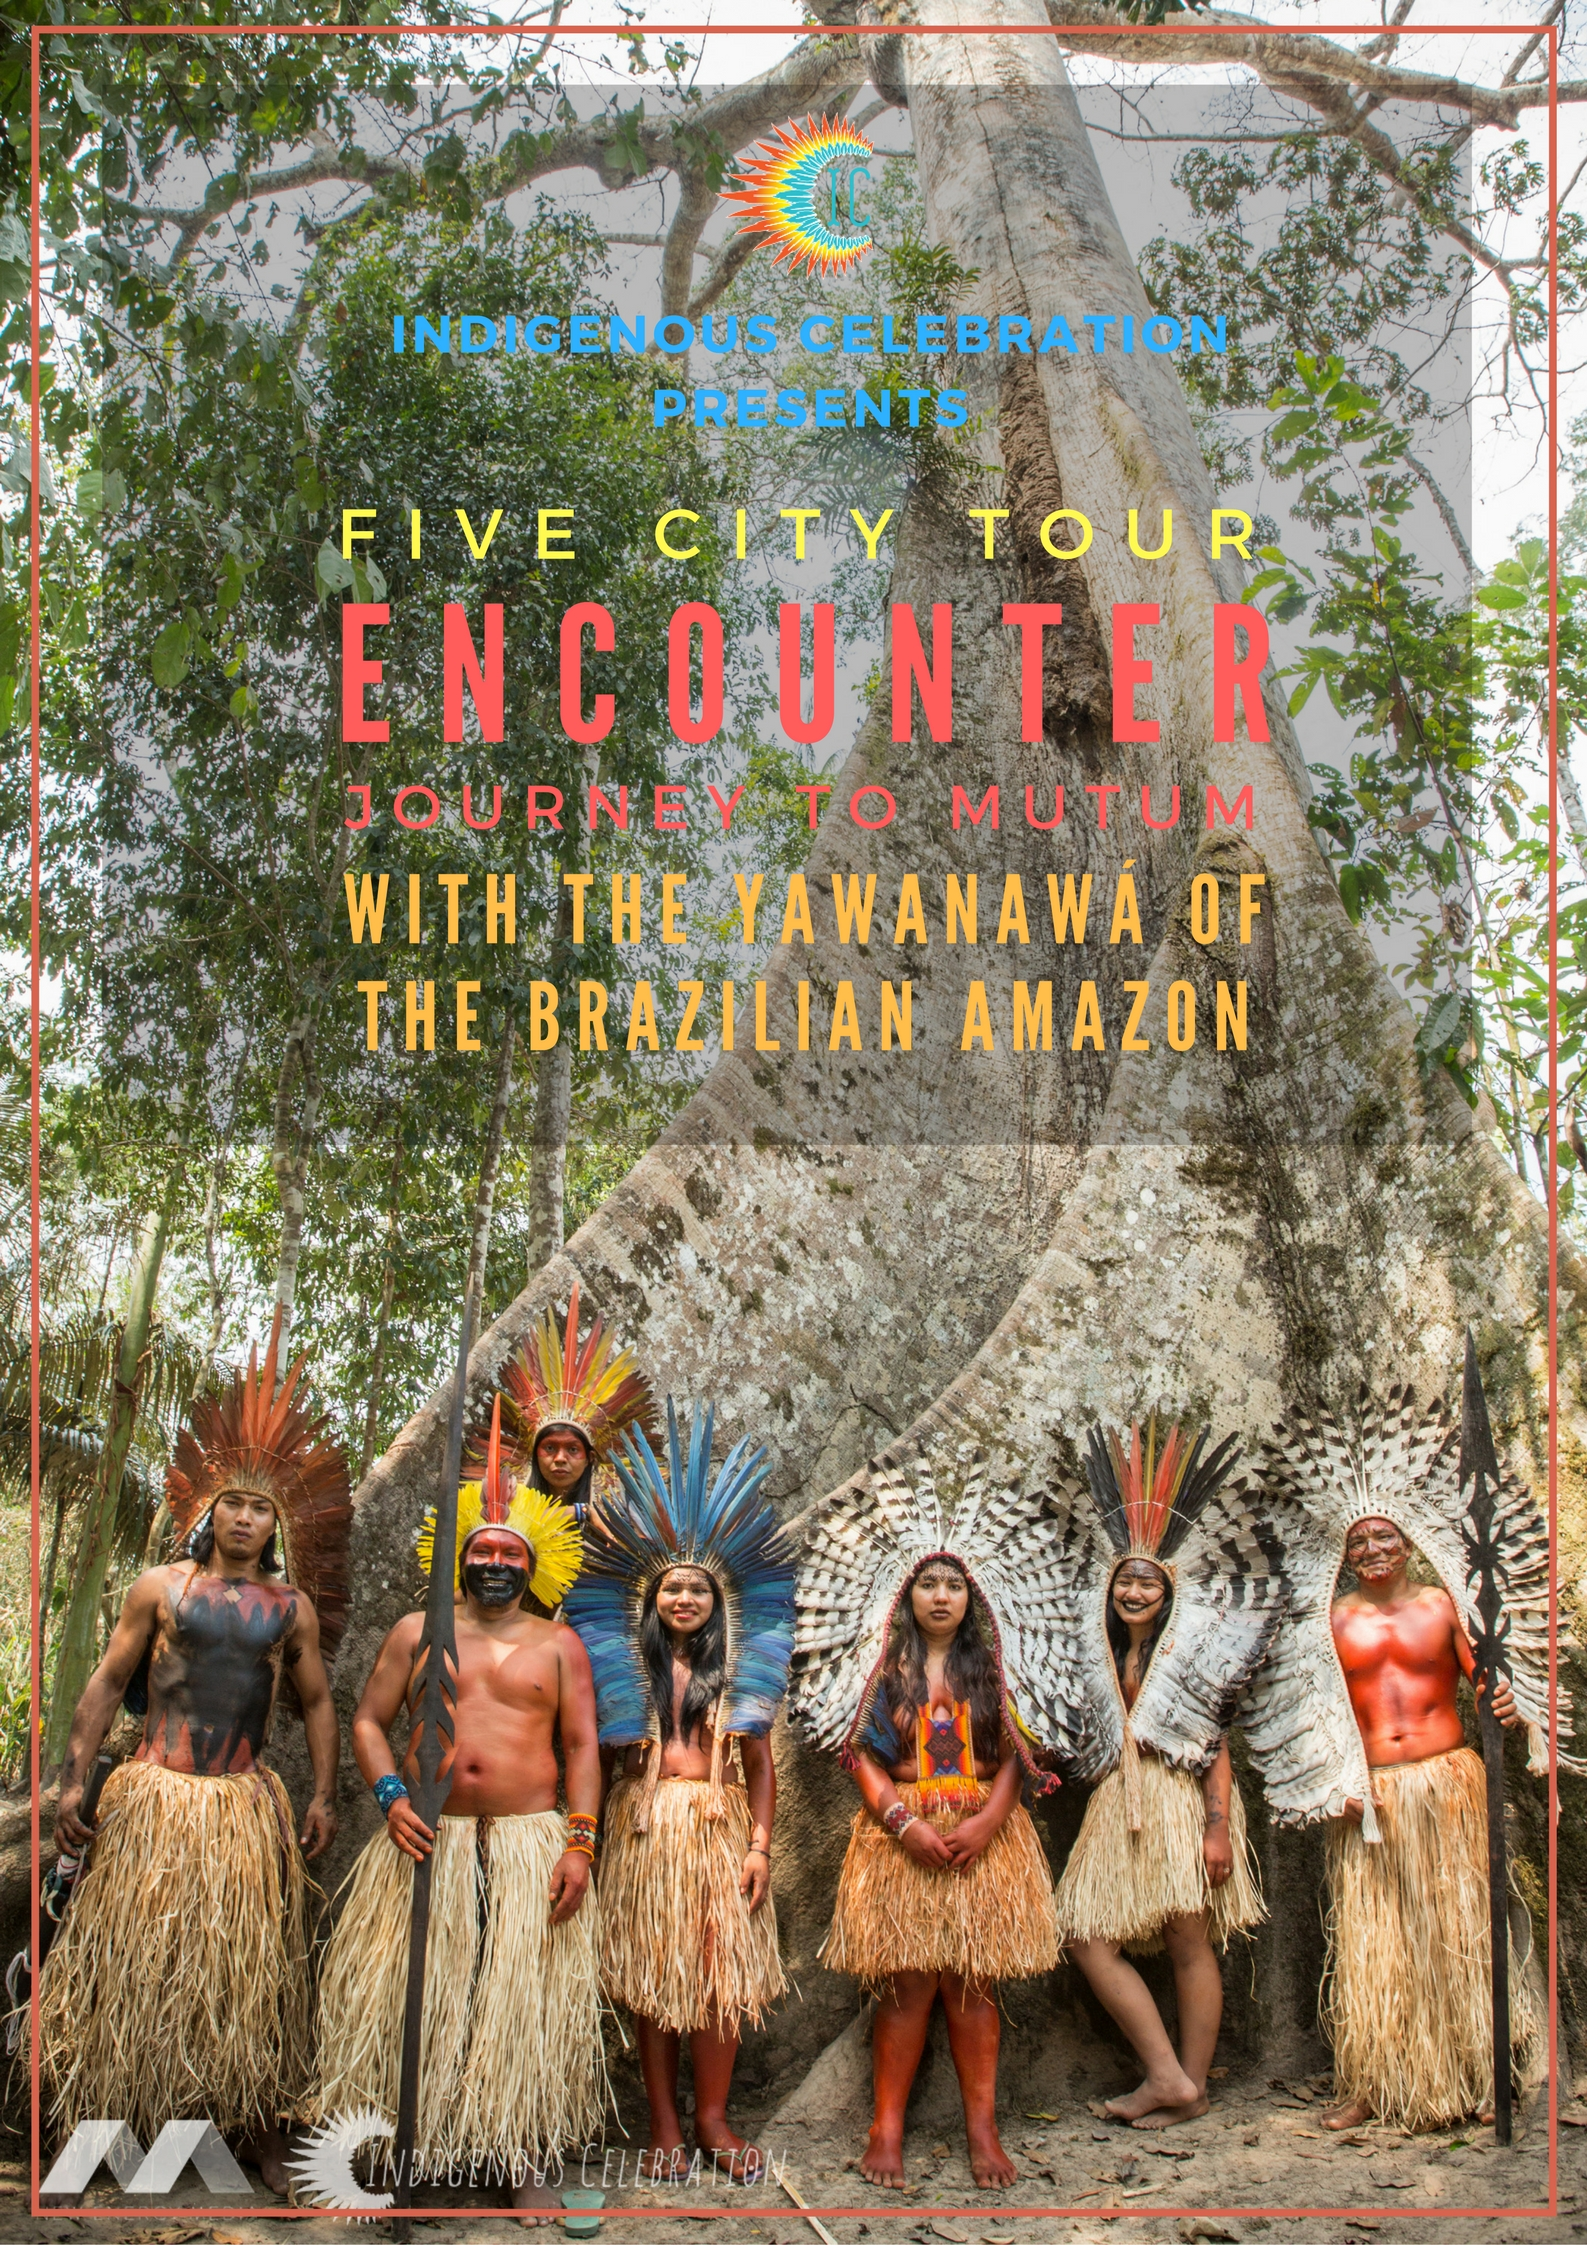 Visit www.ICtickets.org to see the Yawanawa in person Fall 2016